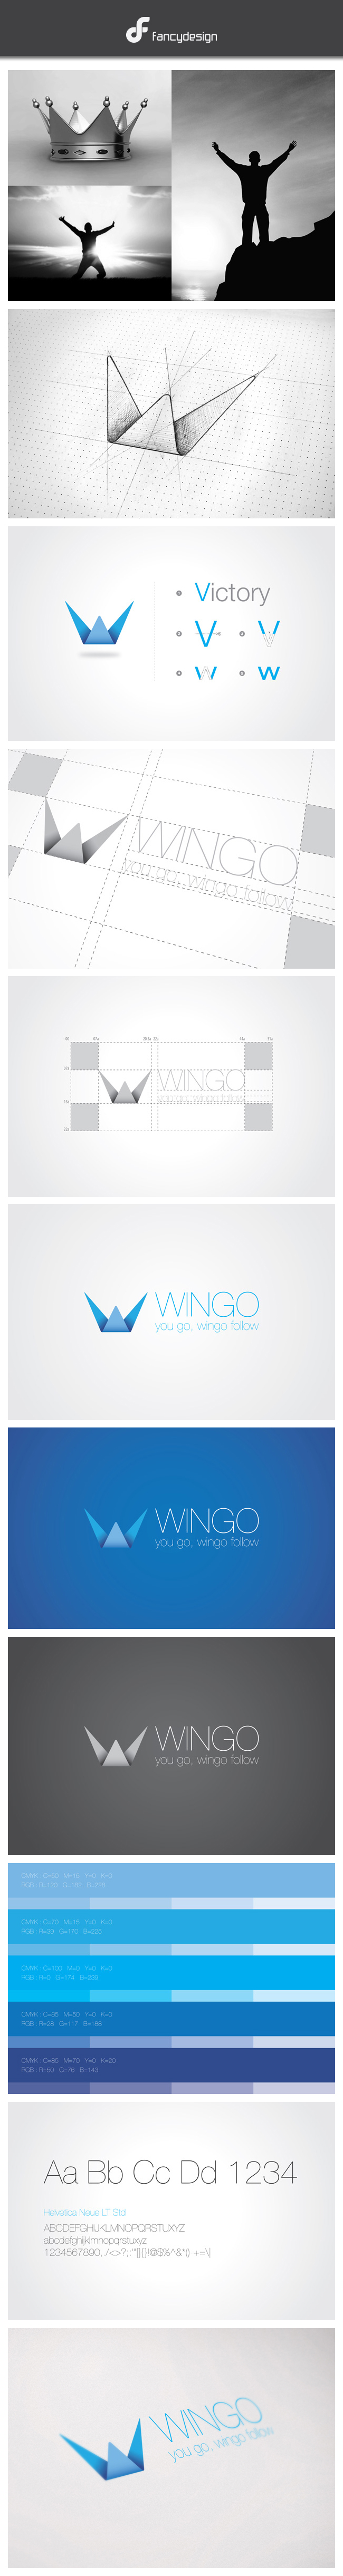 Wingo is a small shop in Ho Chi Minh city. Wingo provides fashion products. Logo wingo was desig ...